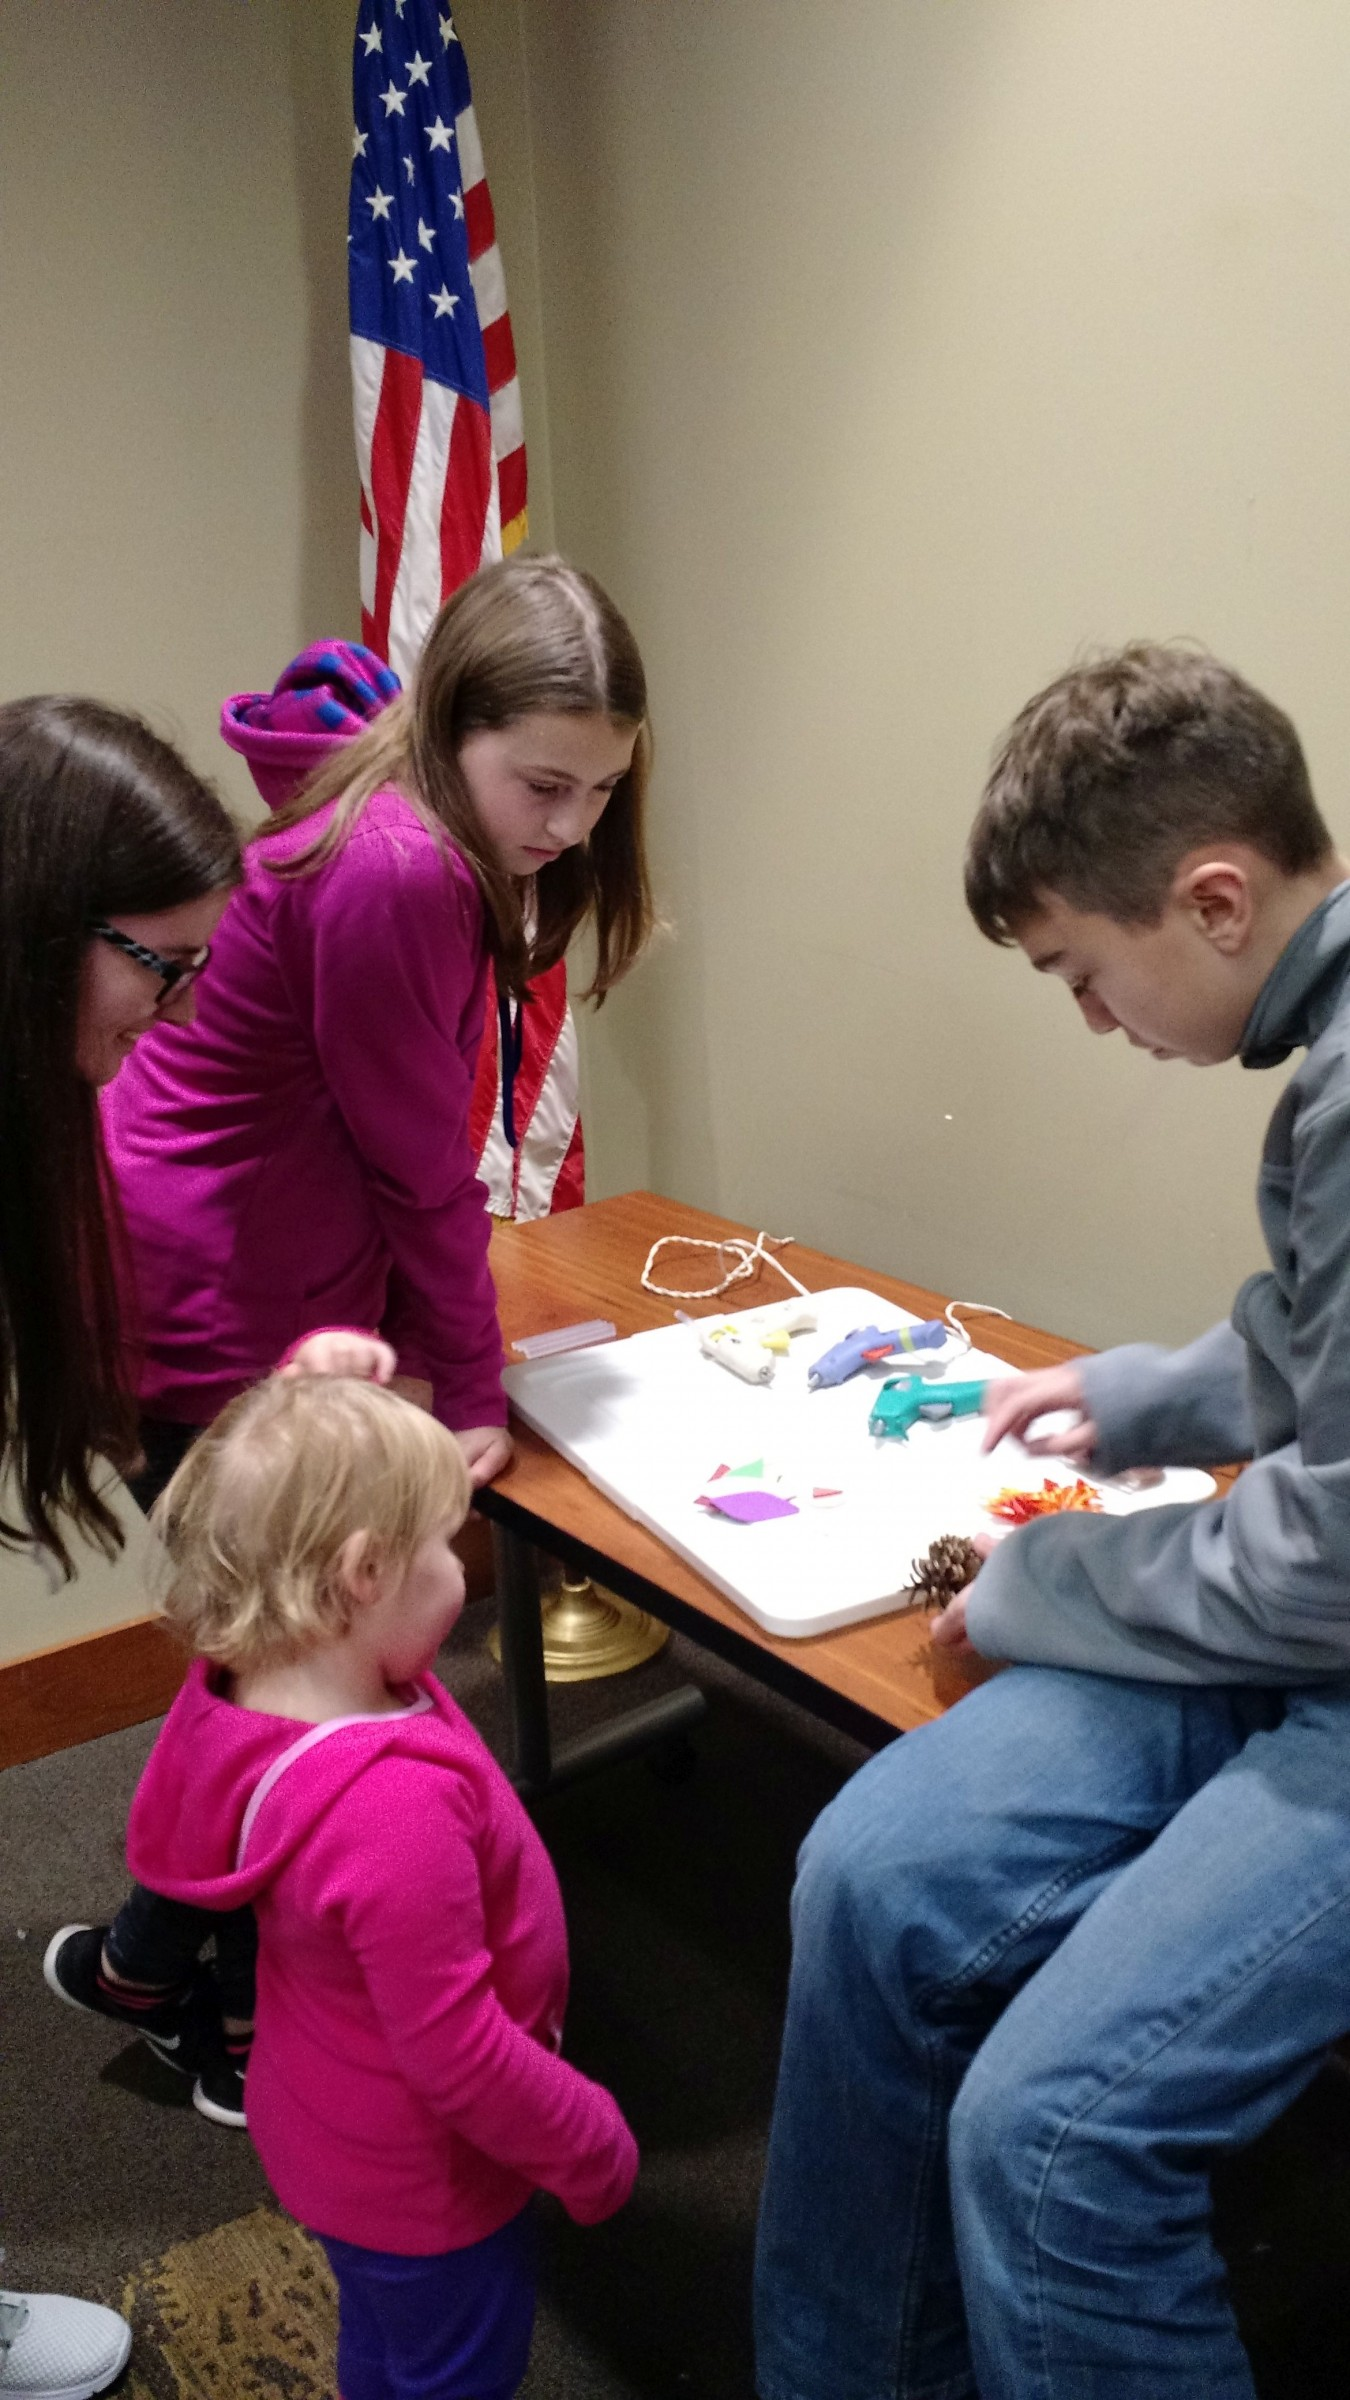 Four children working on a craft project